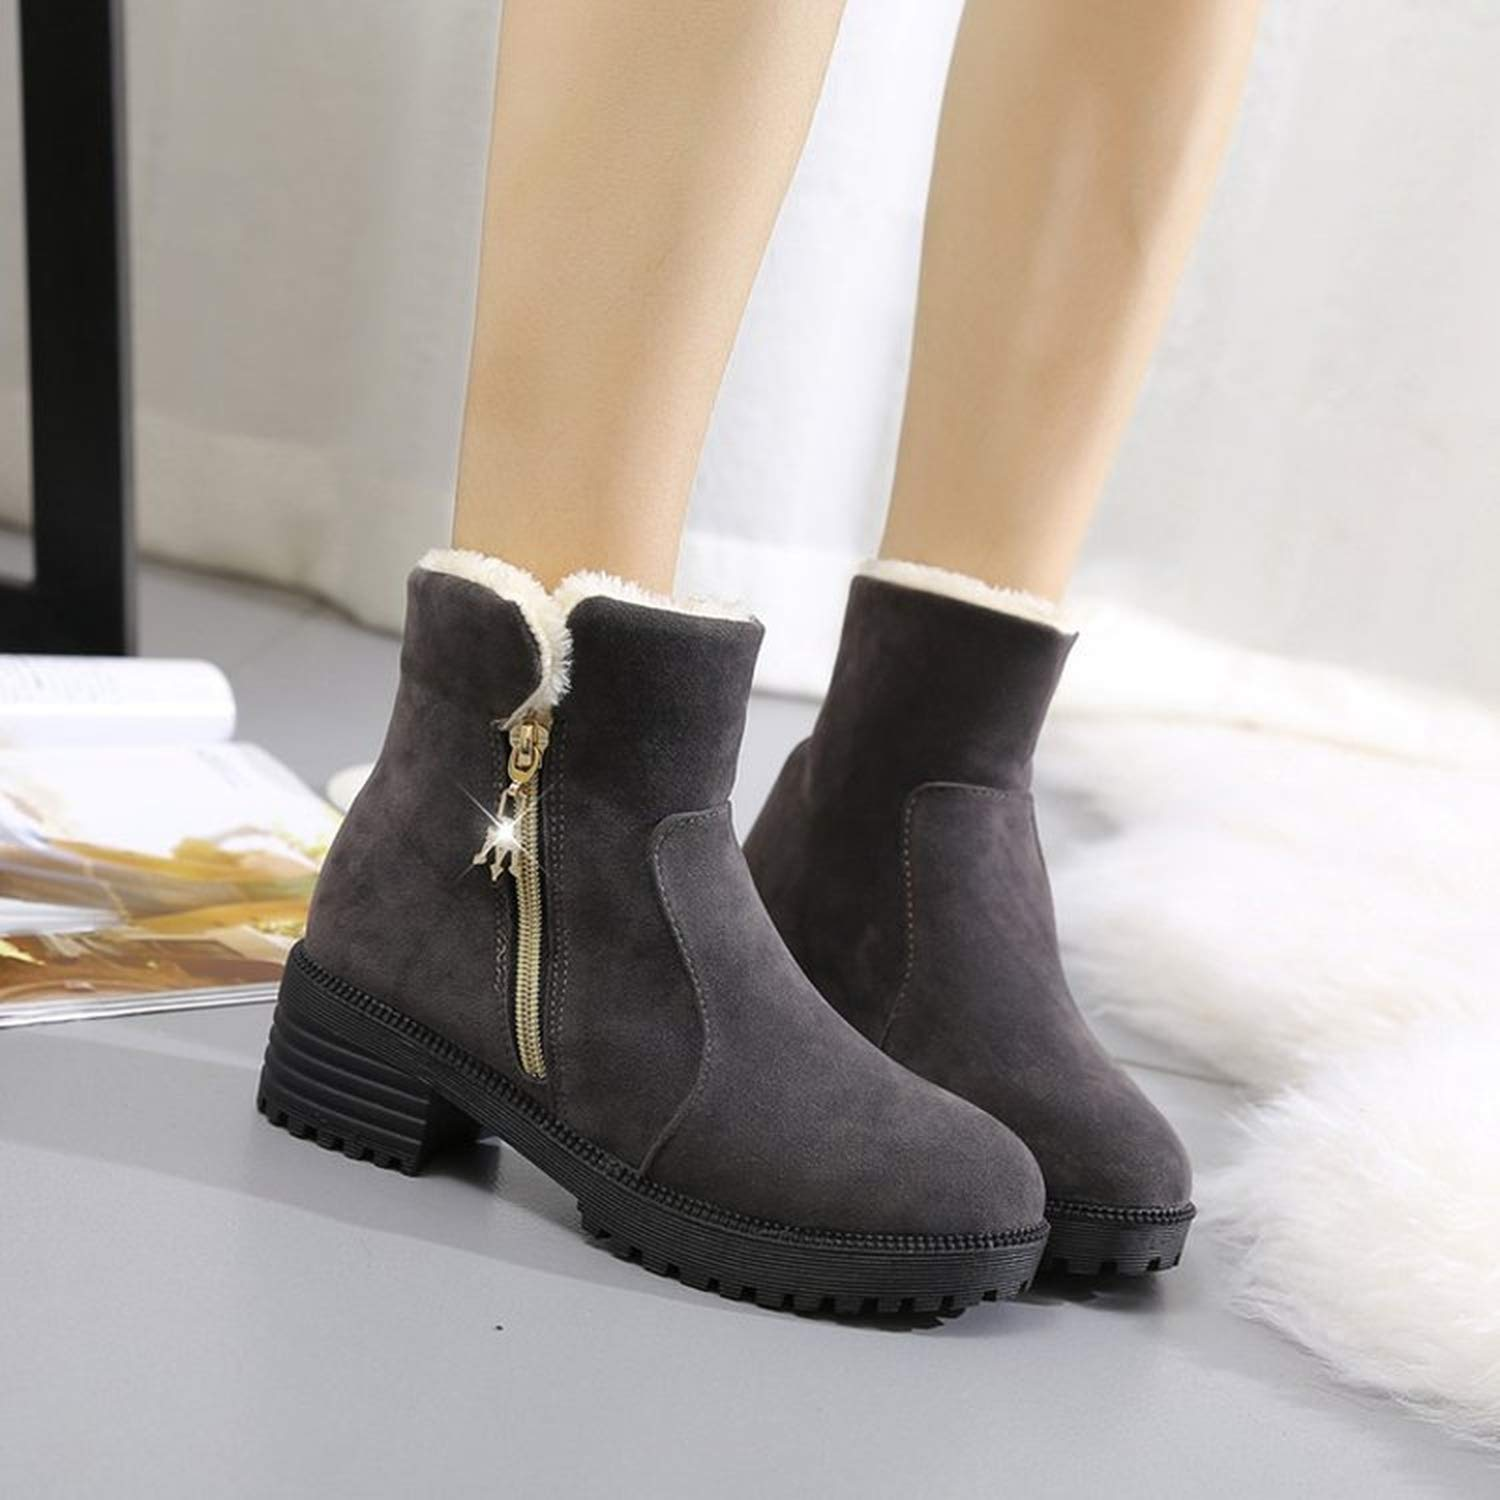 Mingpinstyle Boots Snow Boots Zipper Non-Slip HeightCotton-Padded Shoes